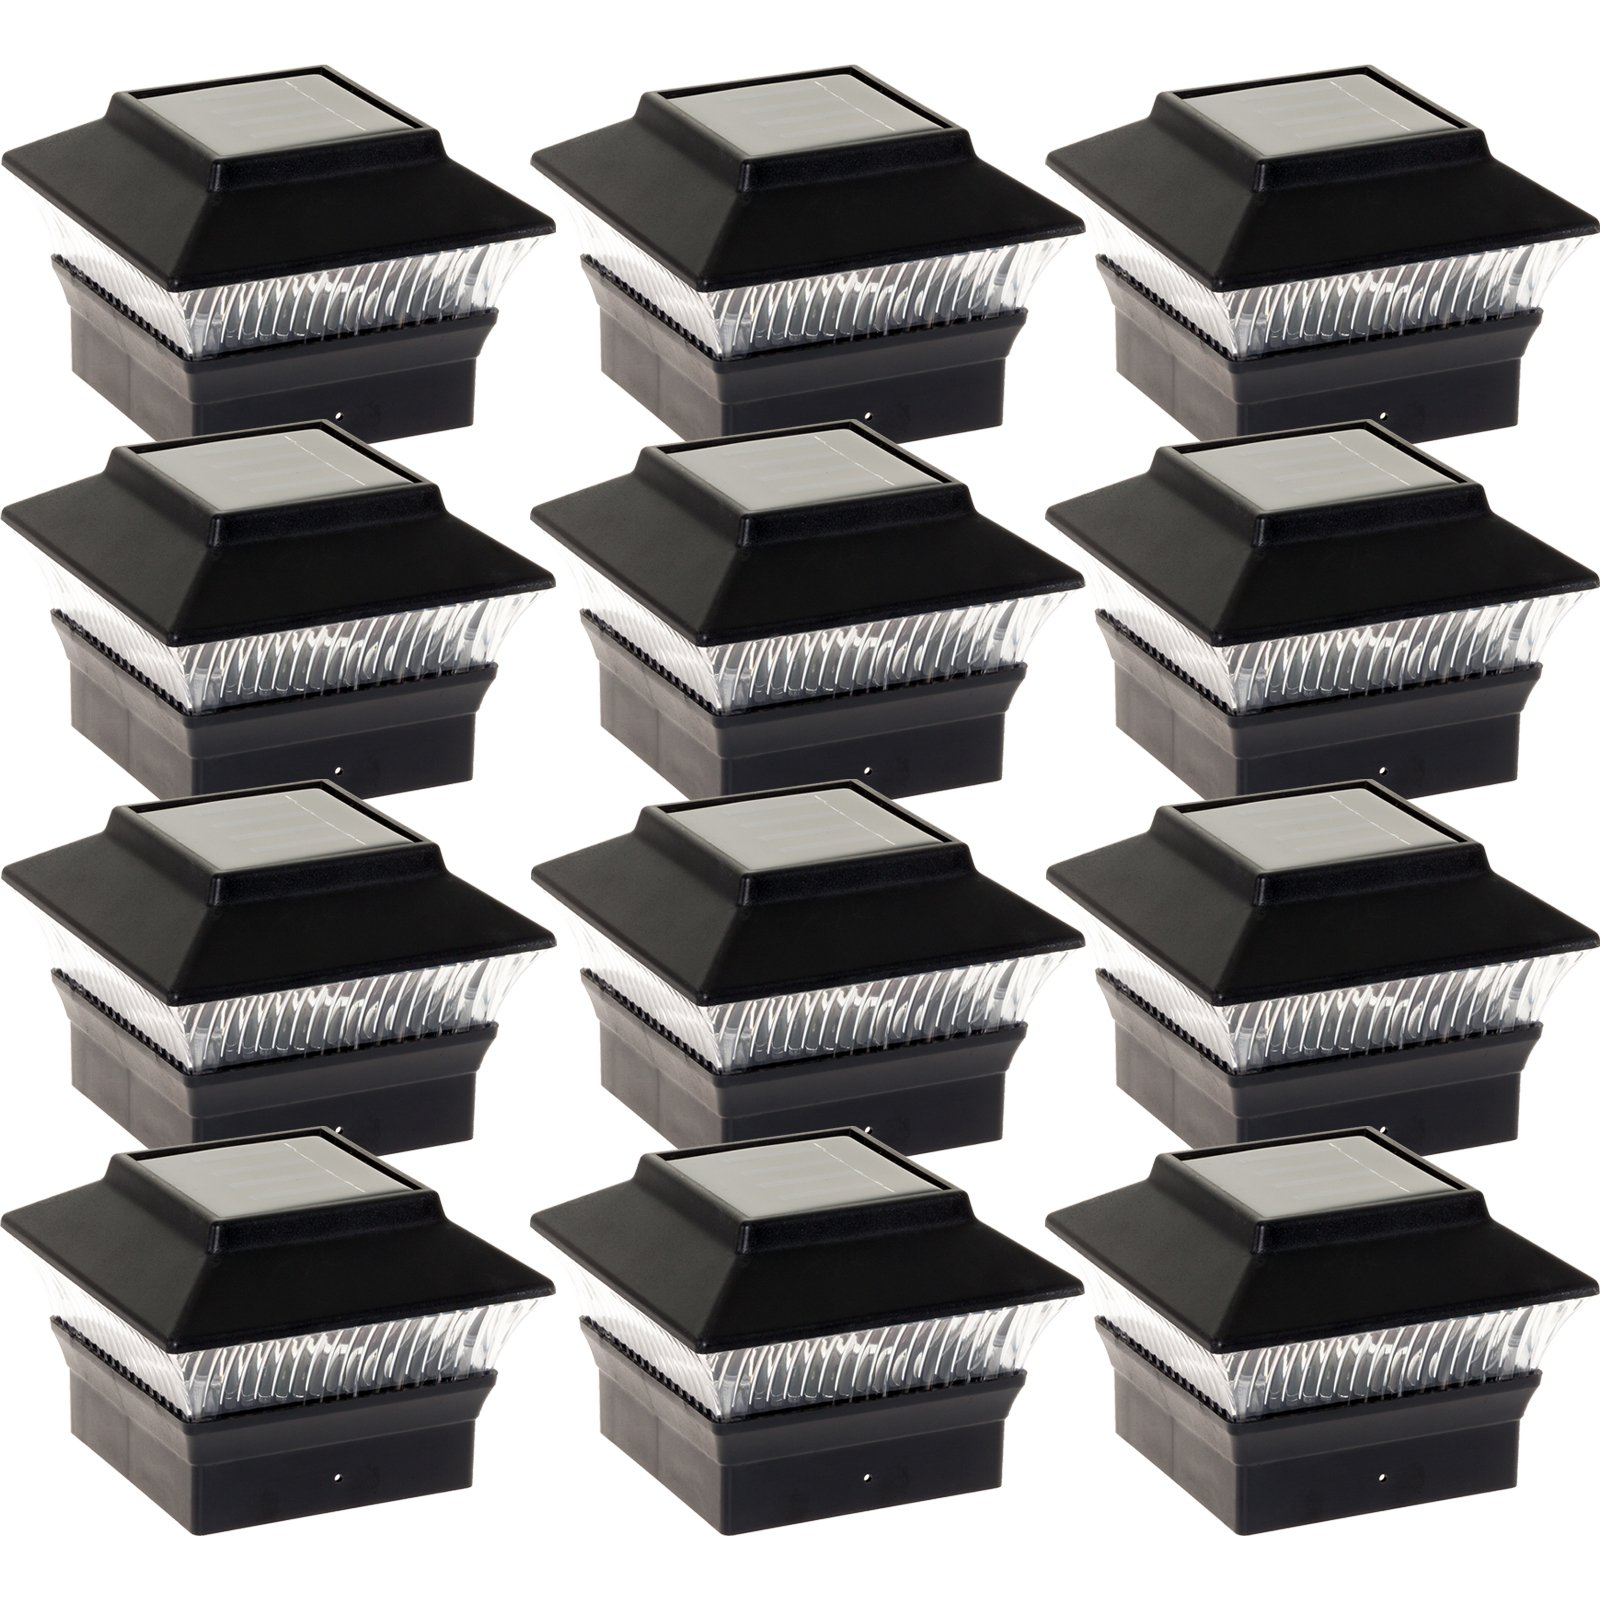 12 Pack Solar Power Square Outdoor Post Cap Lights for 4x4 PVC Posts (Black) by GreenLighting